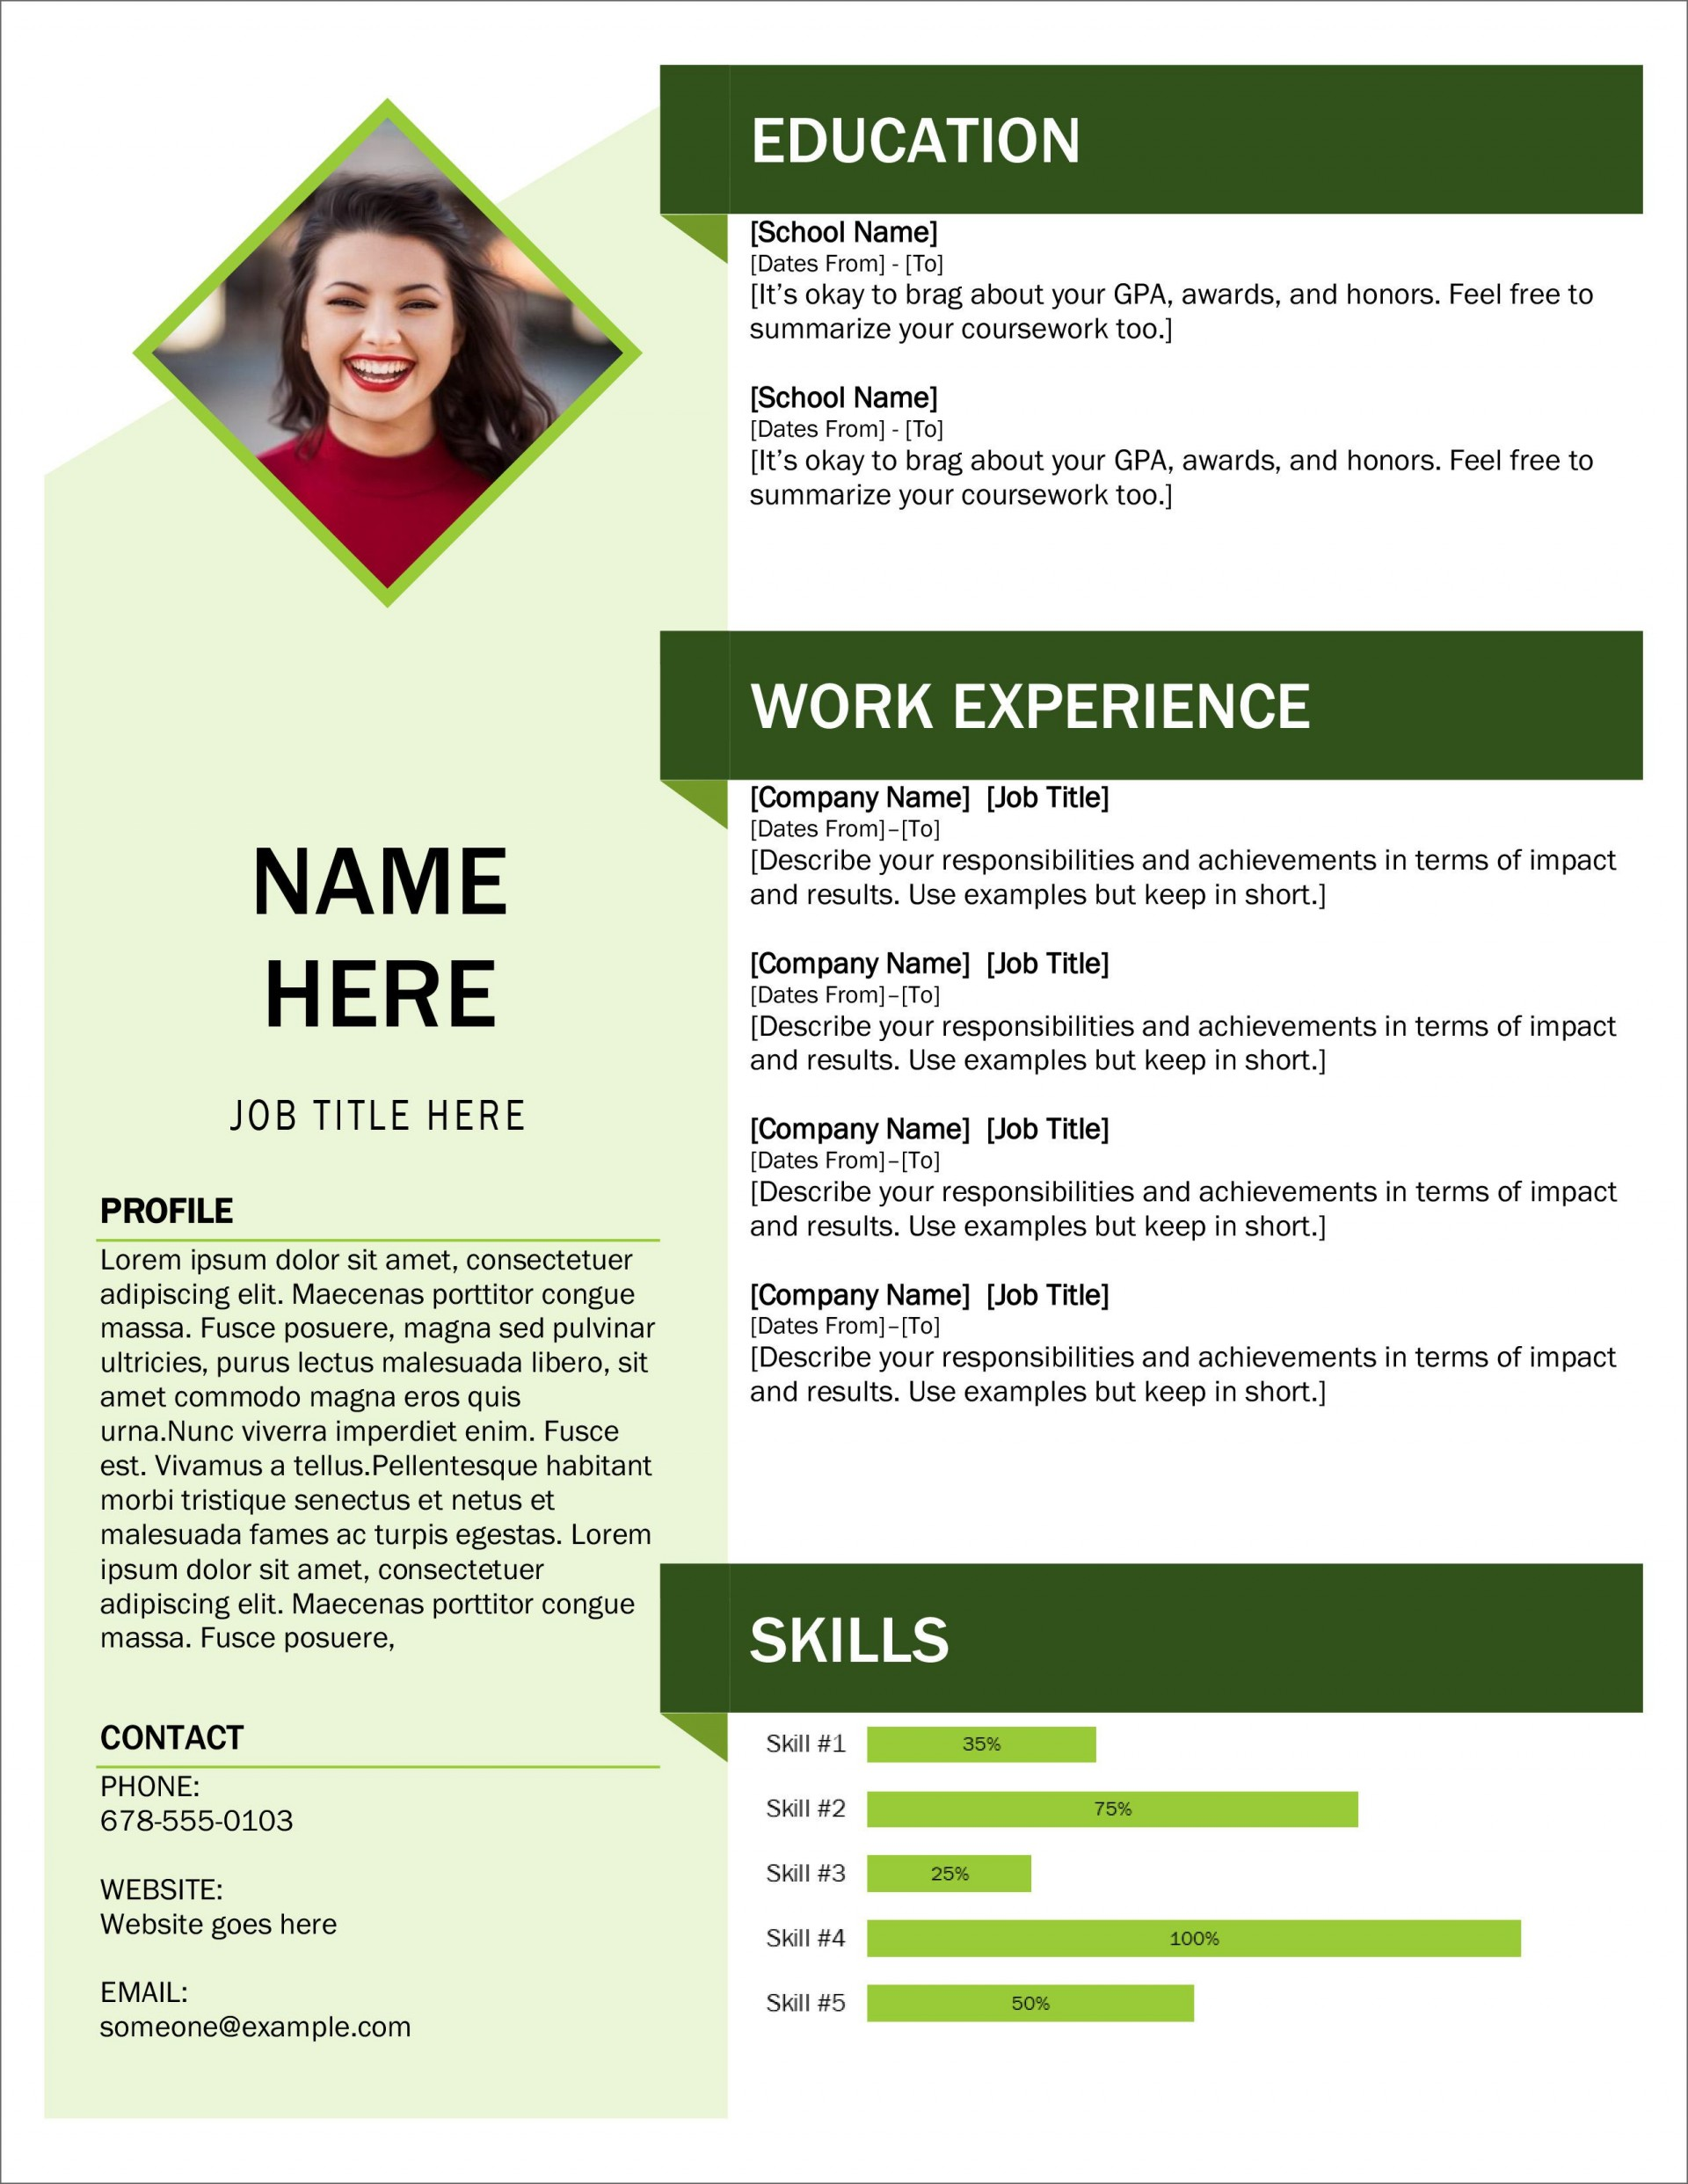 005 Exceptional Download Resume Template Word 2007 High Def 1920